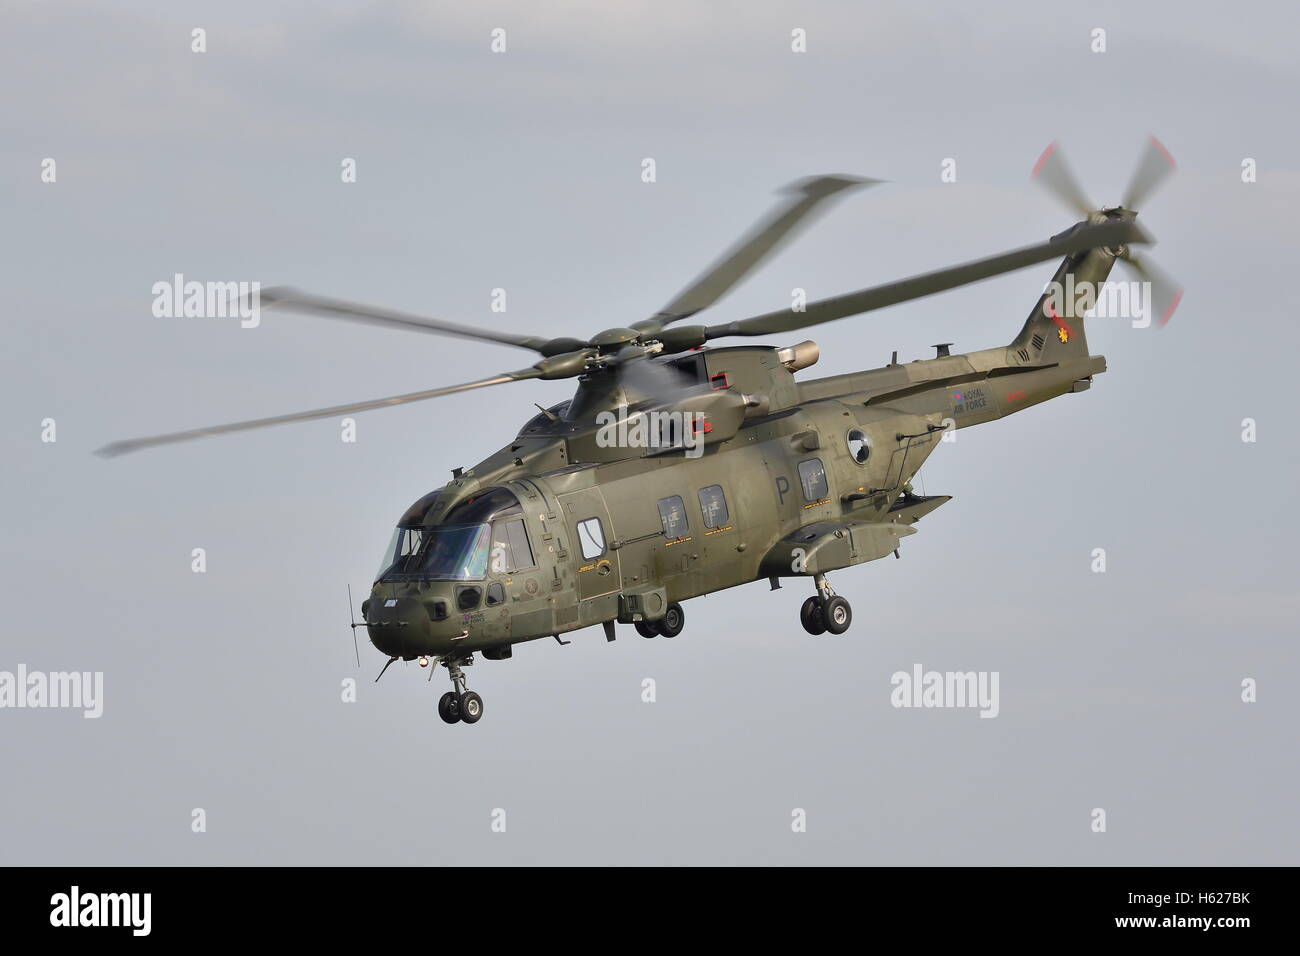 Royal Navy Agusta Westland EH101 Merlin HC.3 ZJ131 helicopter at Abingdon Air & Country show 2014 - Stock Image